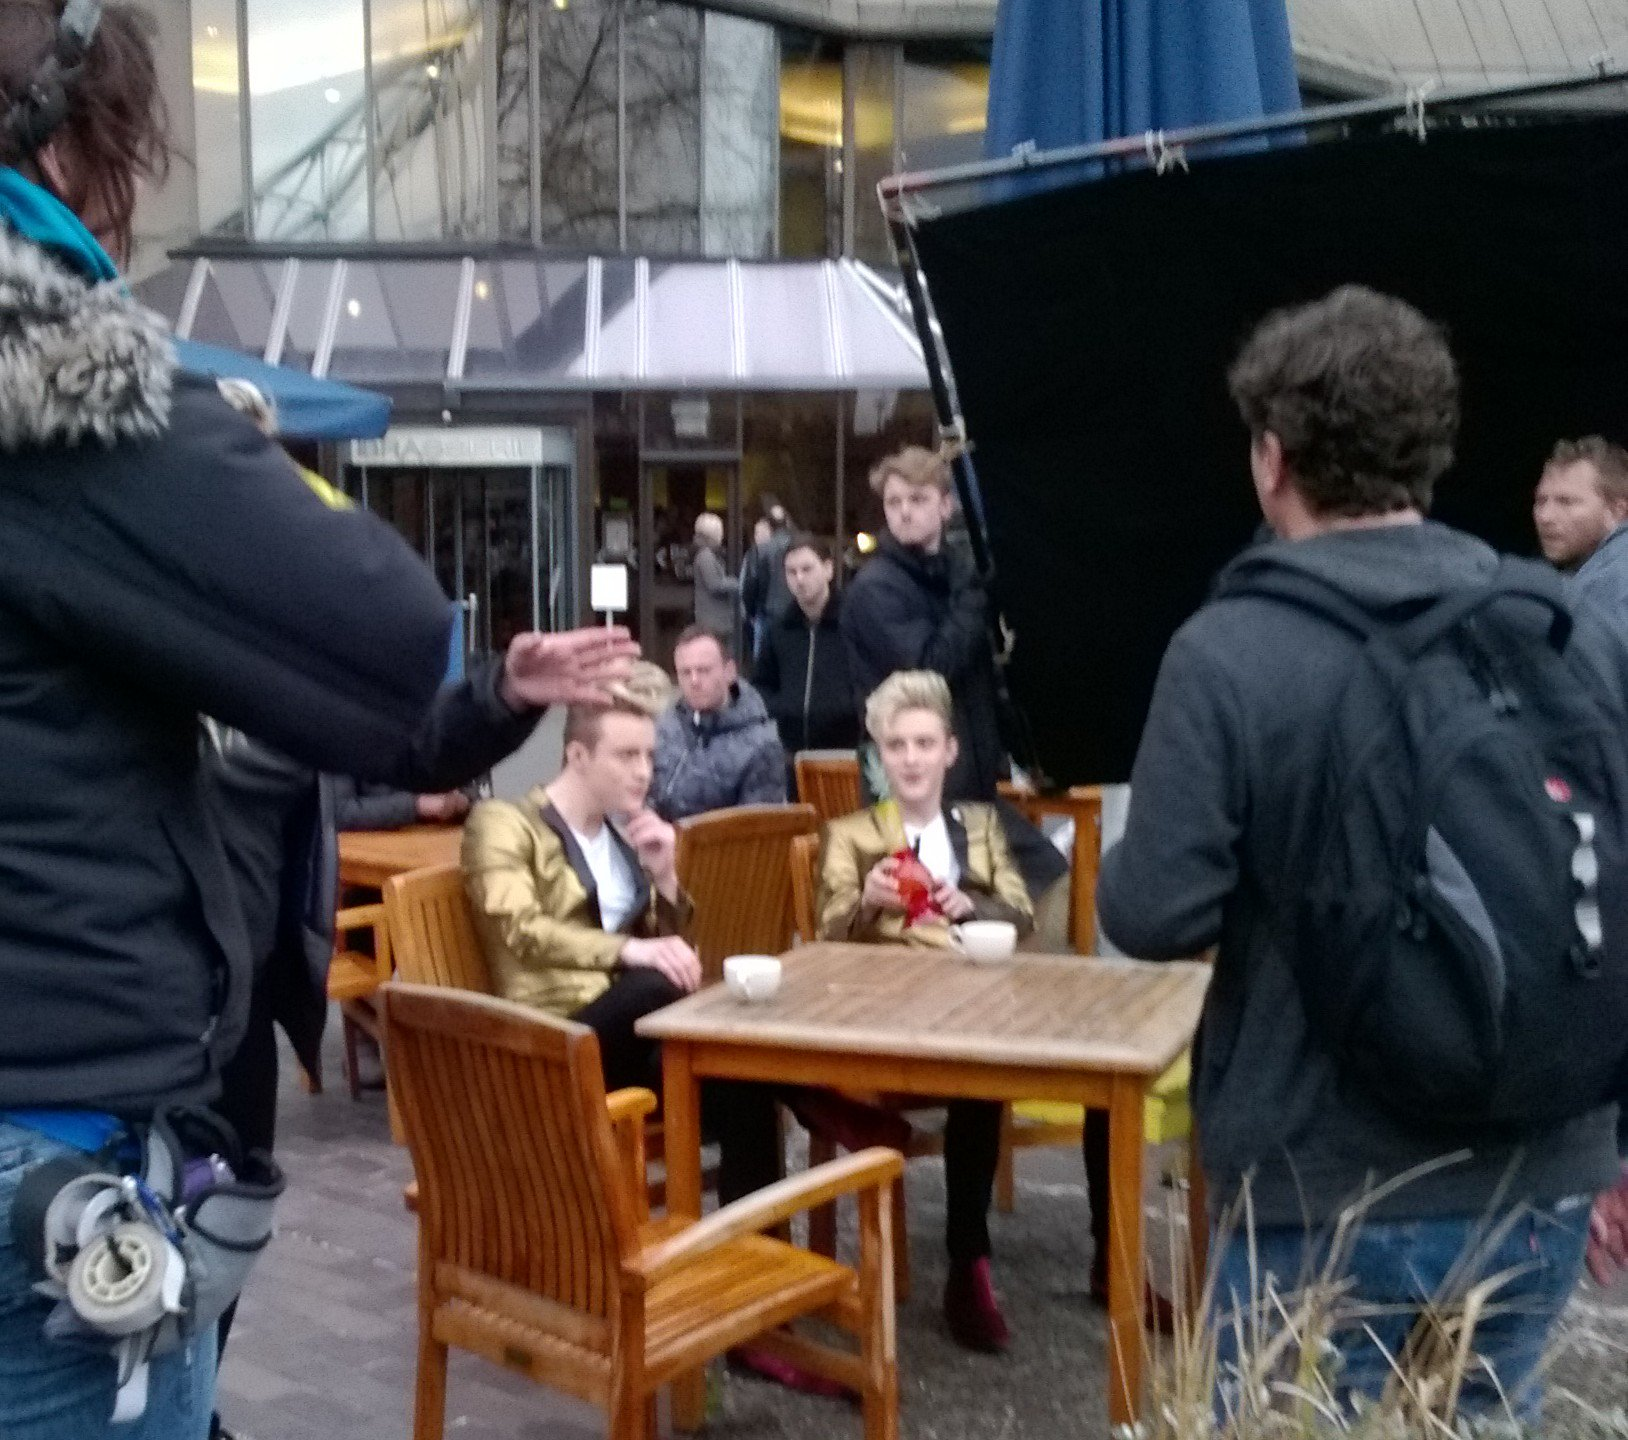 Jedward near Tower Bridge London, filming for Sharknado 5. Photo Credit Alice Fayter (@FumehoodFayter) and Twitter